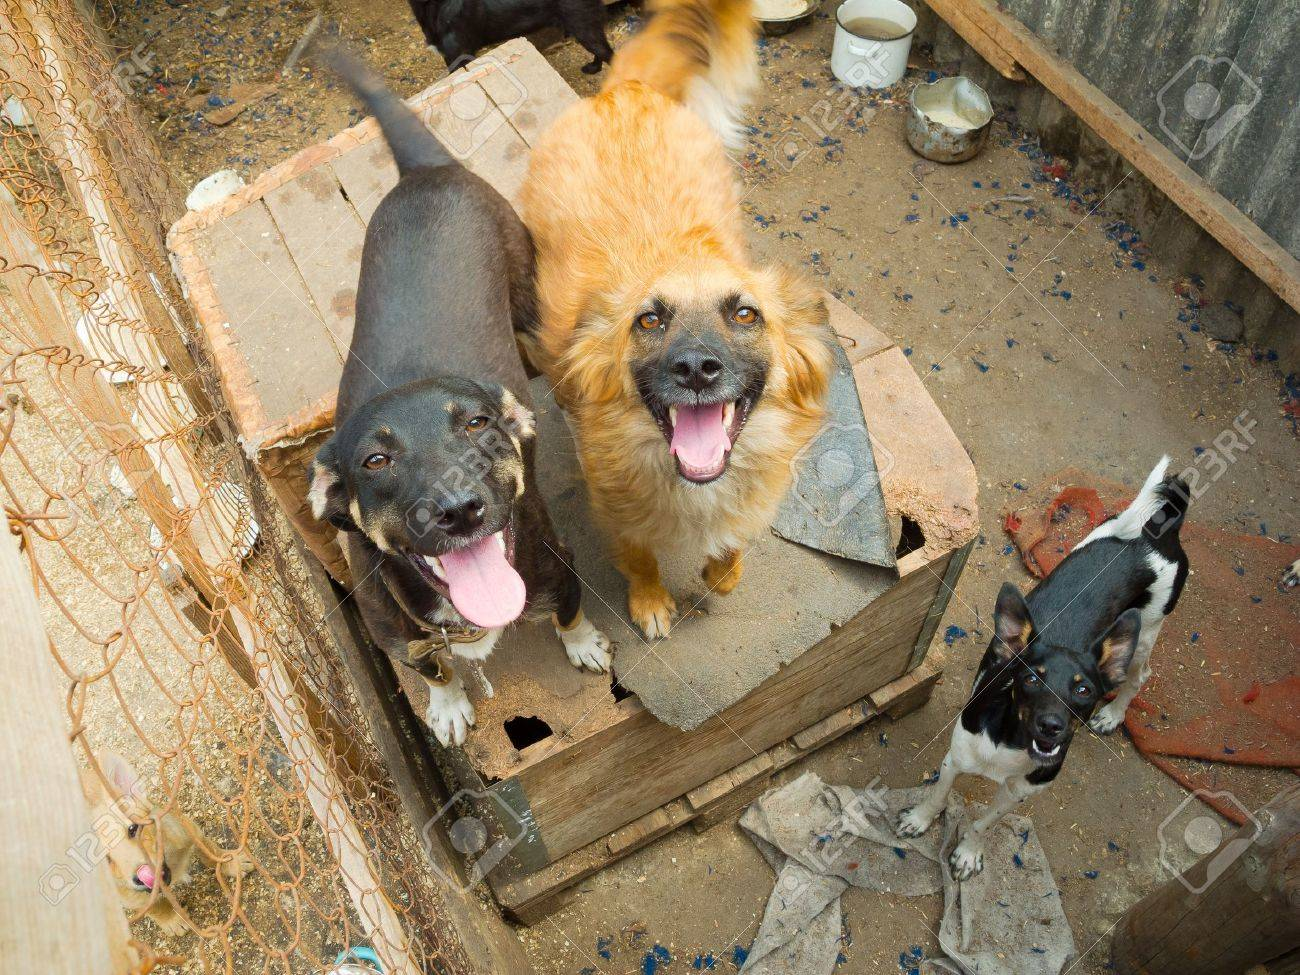 Stray dogs in the shelter - 14241998